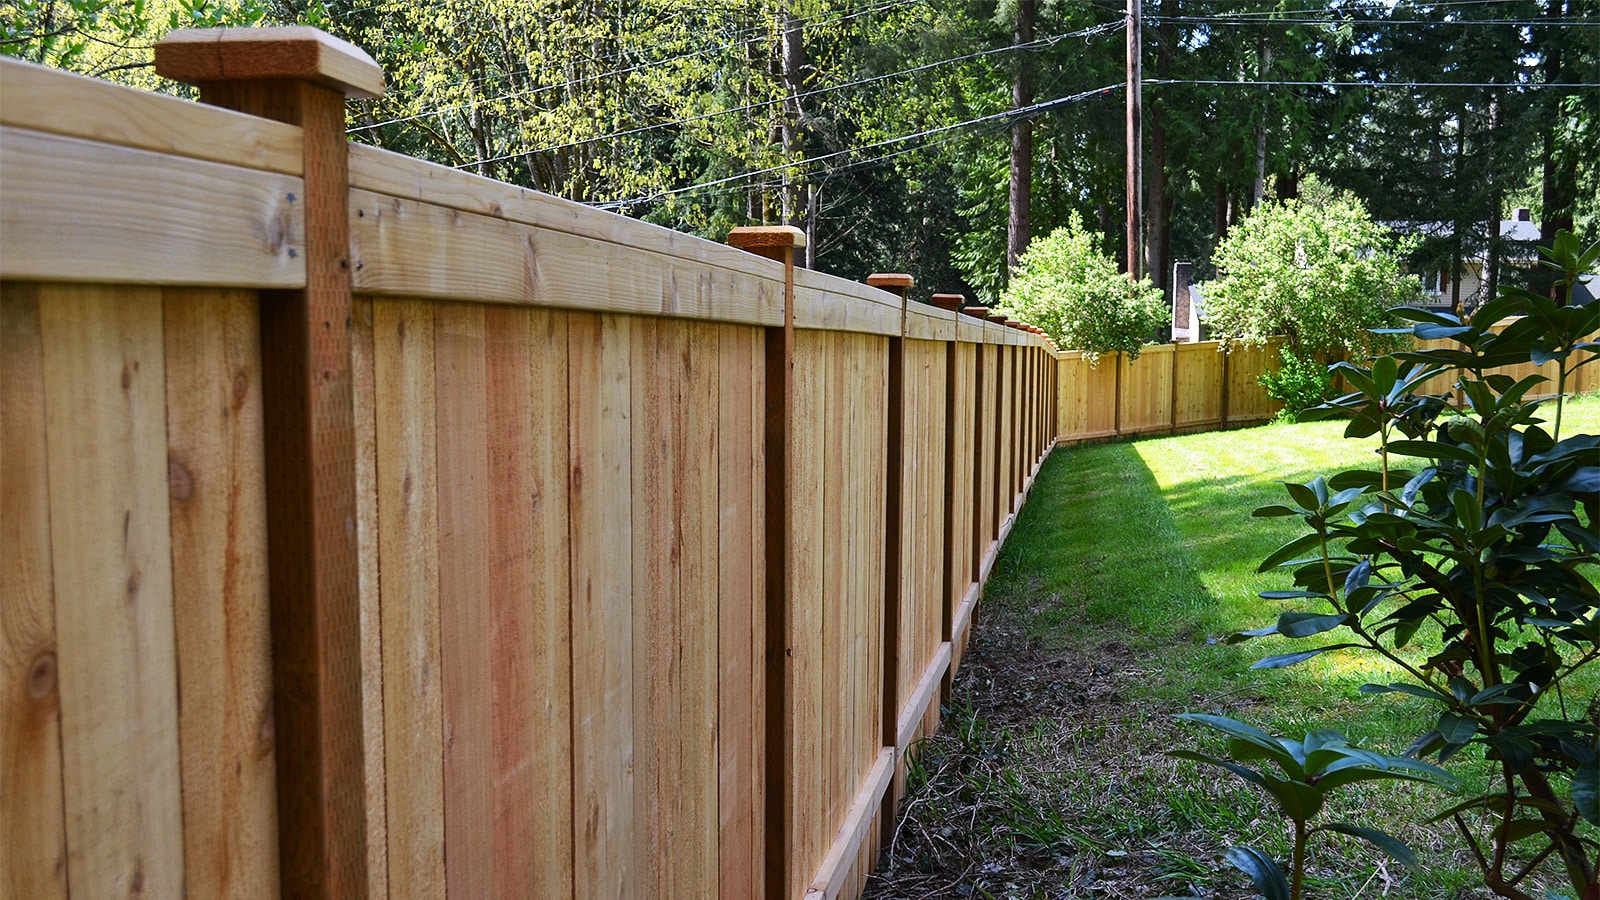 Back View of 6ft Tall Cedar Panel Fence